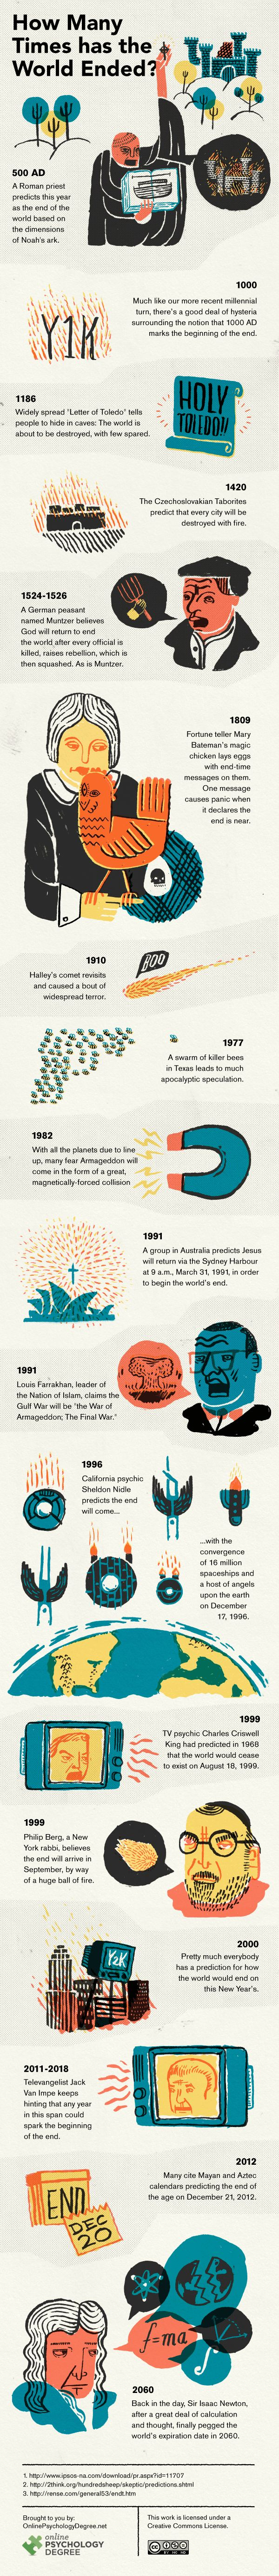 Infographic: How Many Times Has The World Ended?